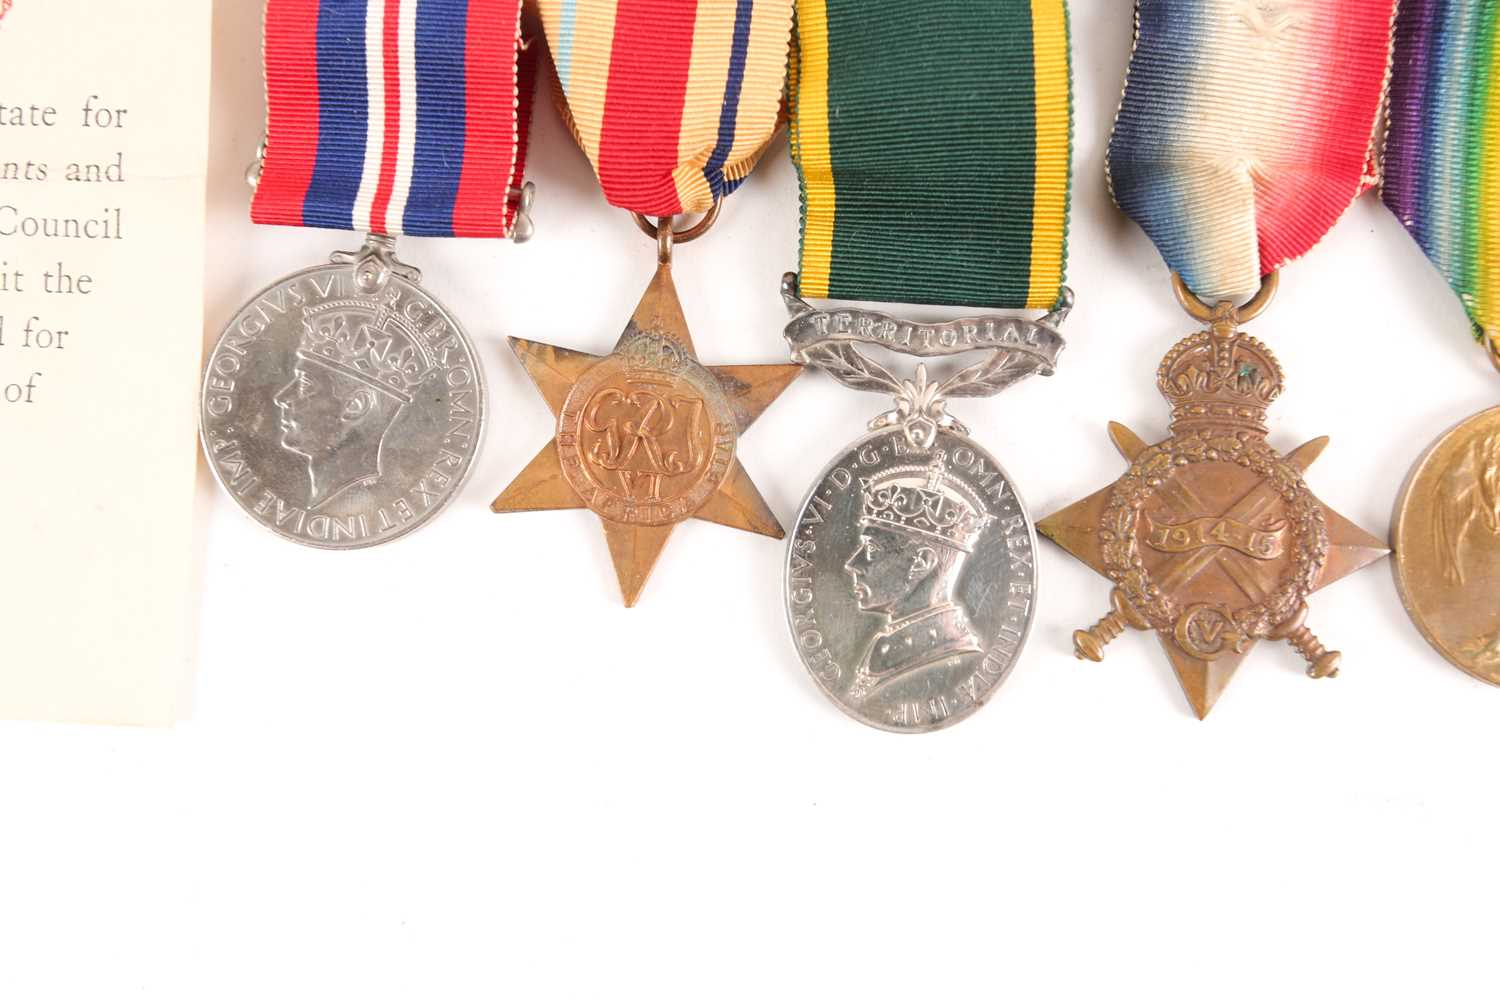 A WWI Campaign, Victory Medal and 1914-1918 Star, to G-4982 PTE. J.R. Pont, Royal Sussex Regiment, - Image 3 of 10